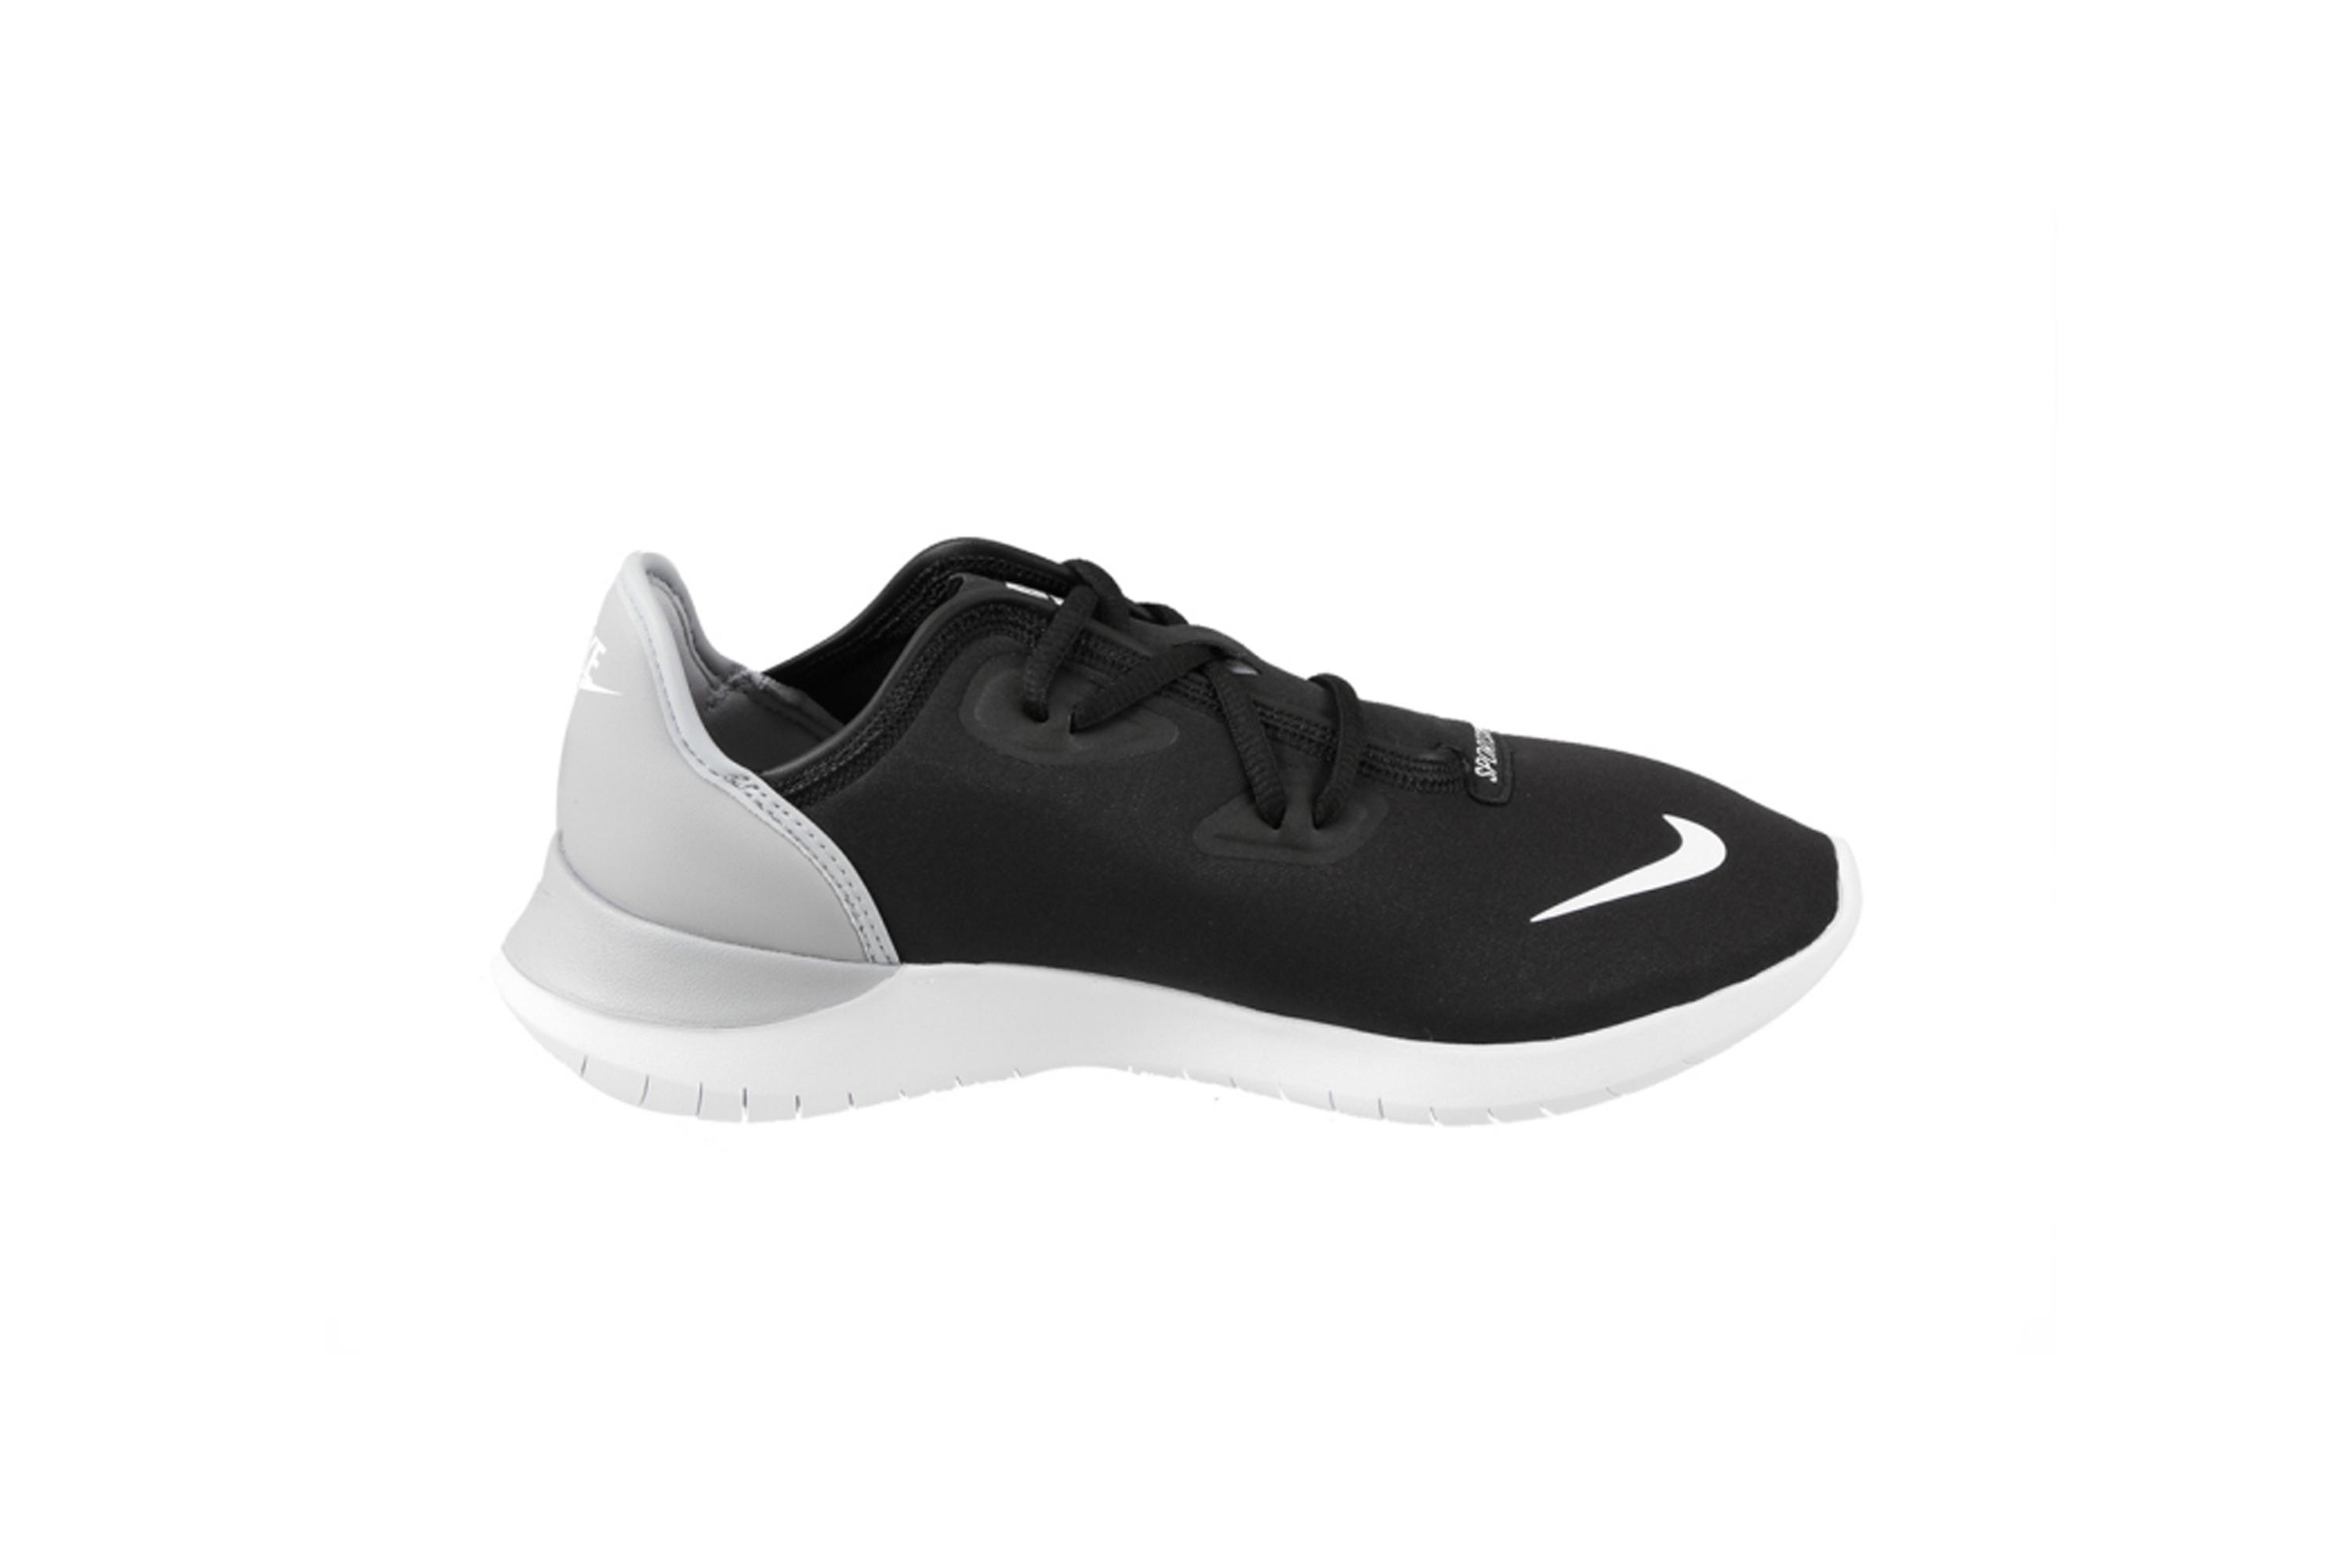 online retailer d7b33 8c735 Latest Nike Mens Sports Shoes   Clothing Products   Enjoy Huge Discounts    Lazada SG